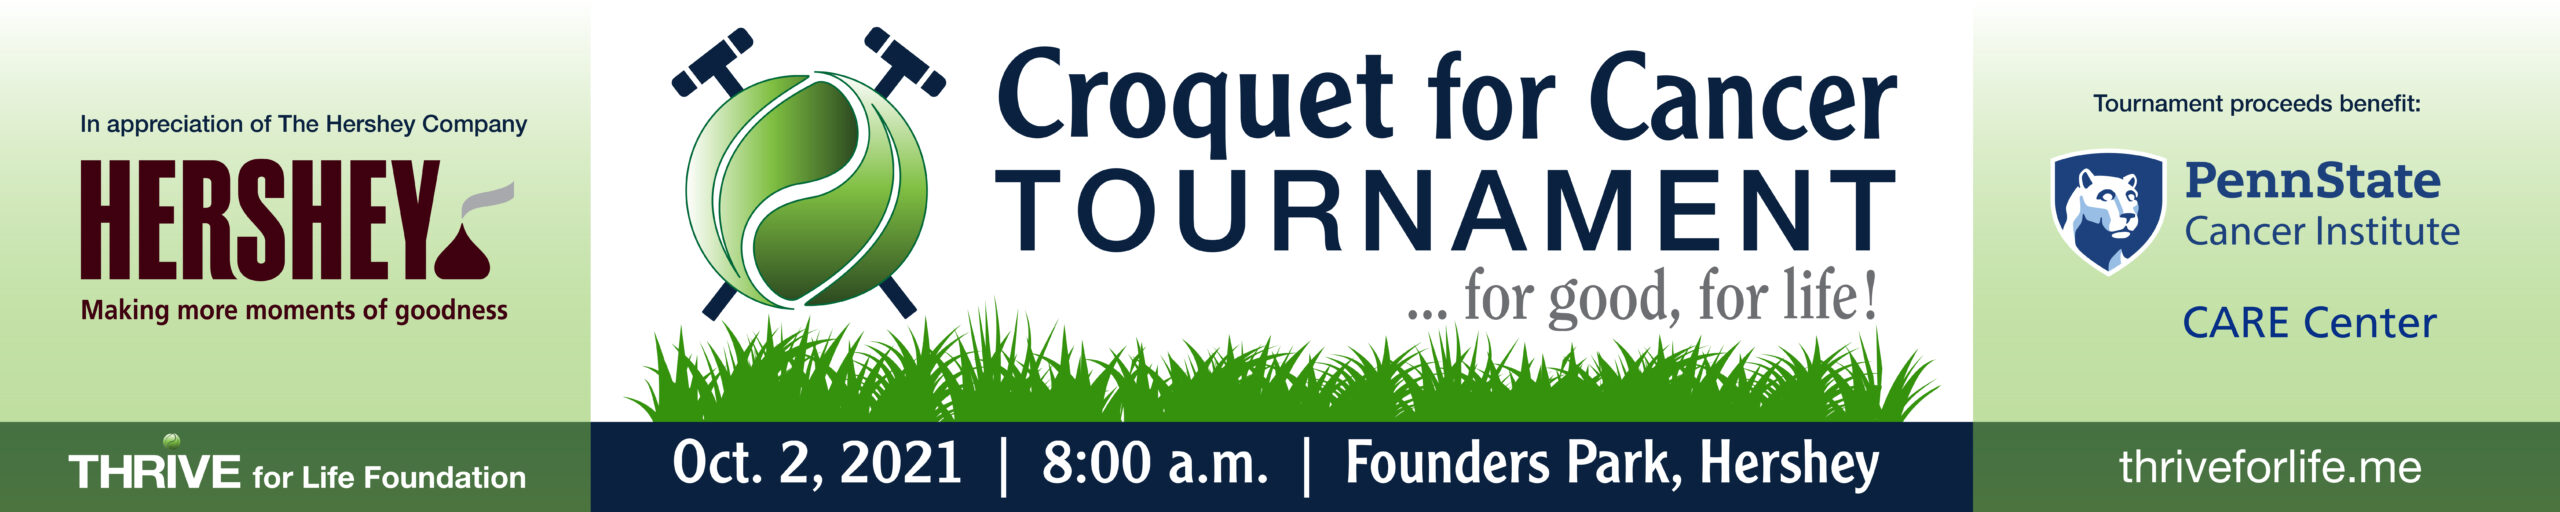 THRIVE_Croquet for Cancer_Grand Sponsor_Route 322 Banner_08-31-2021